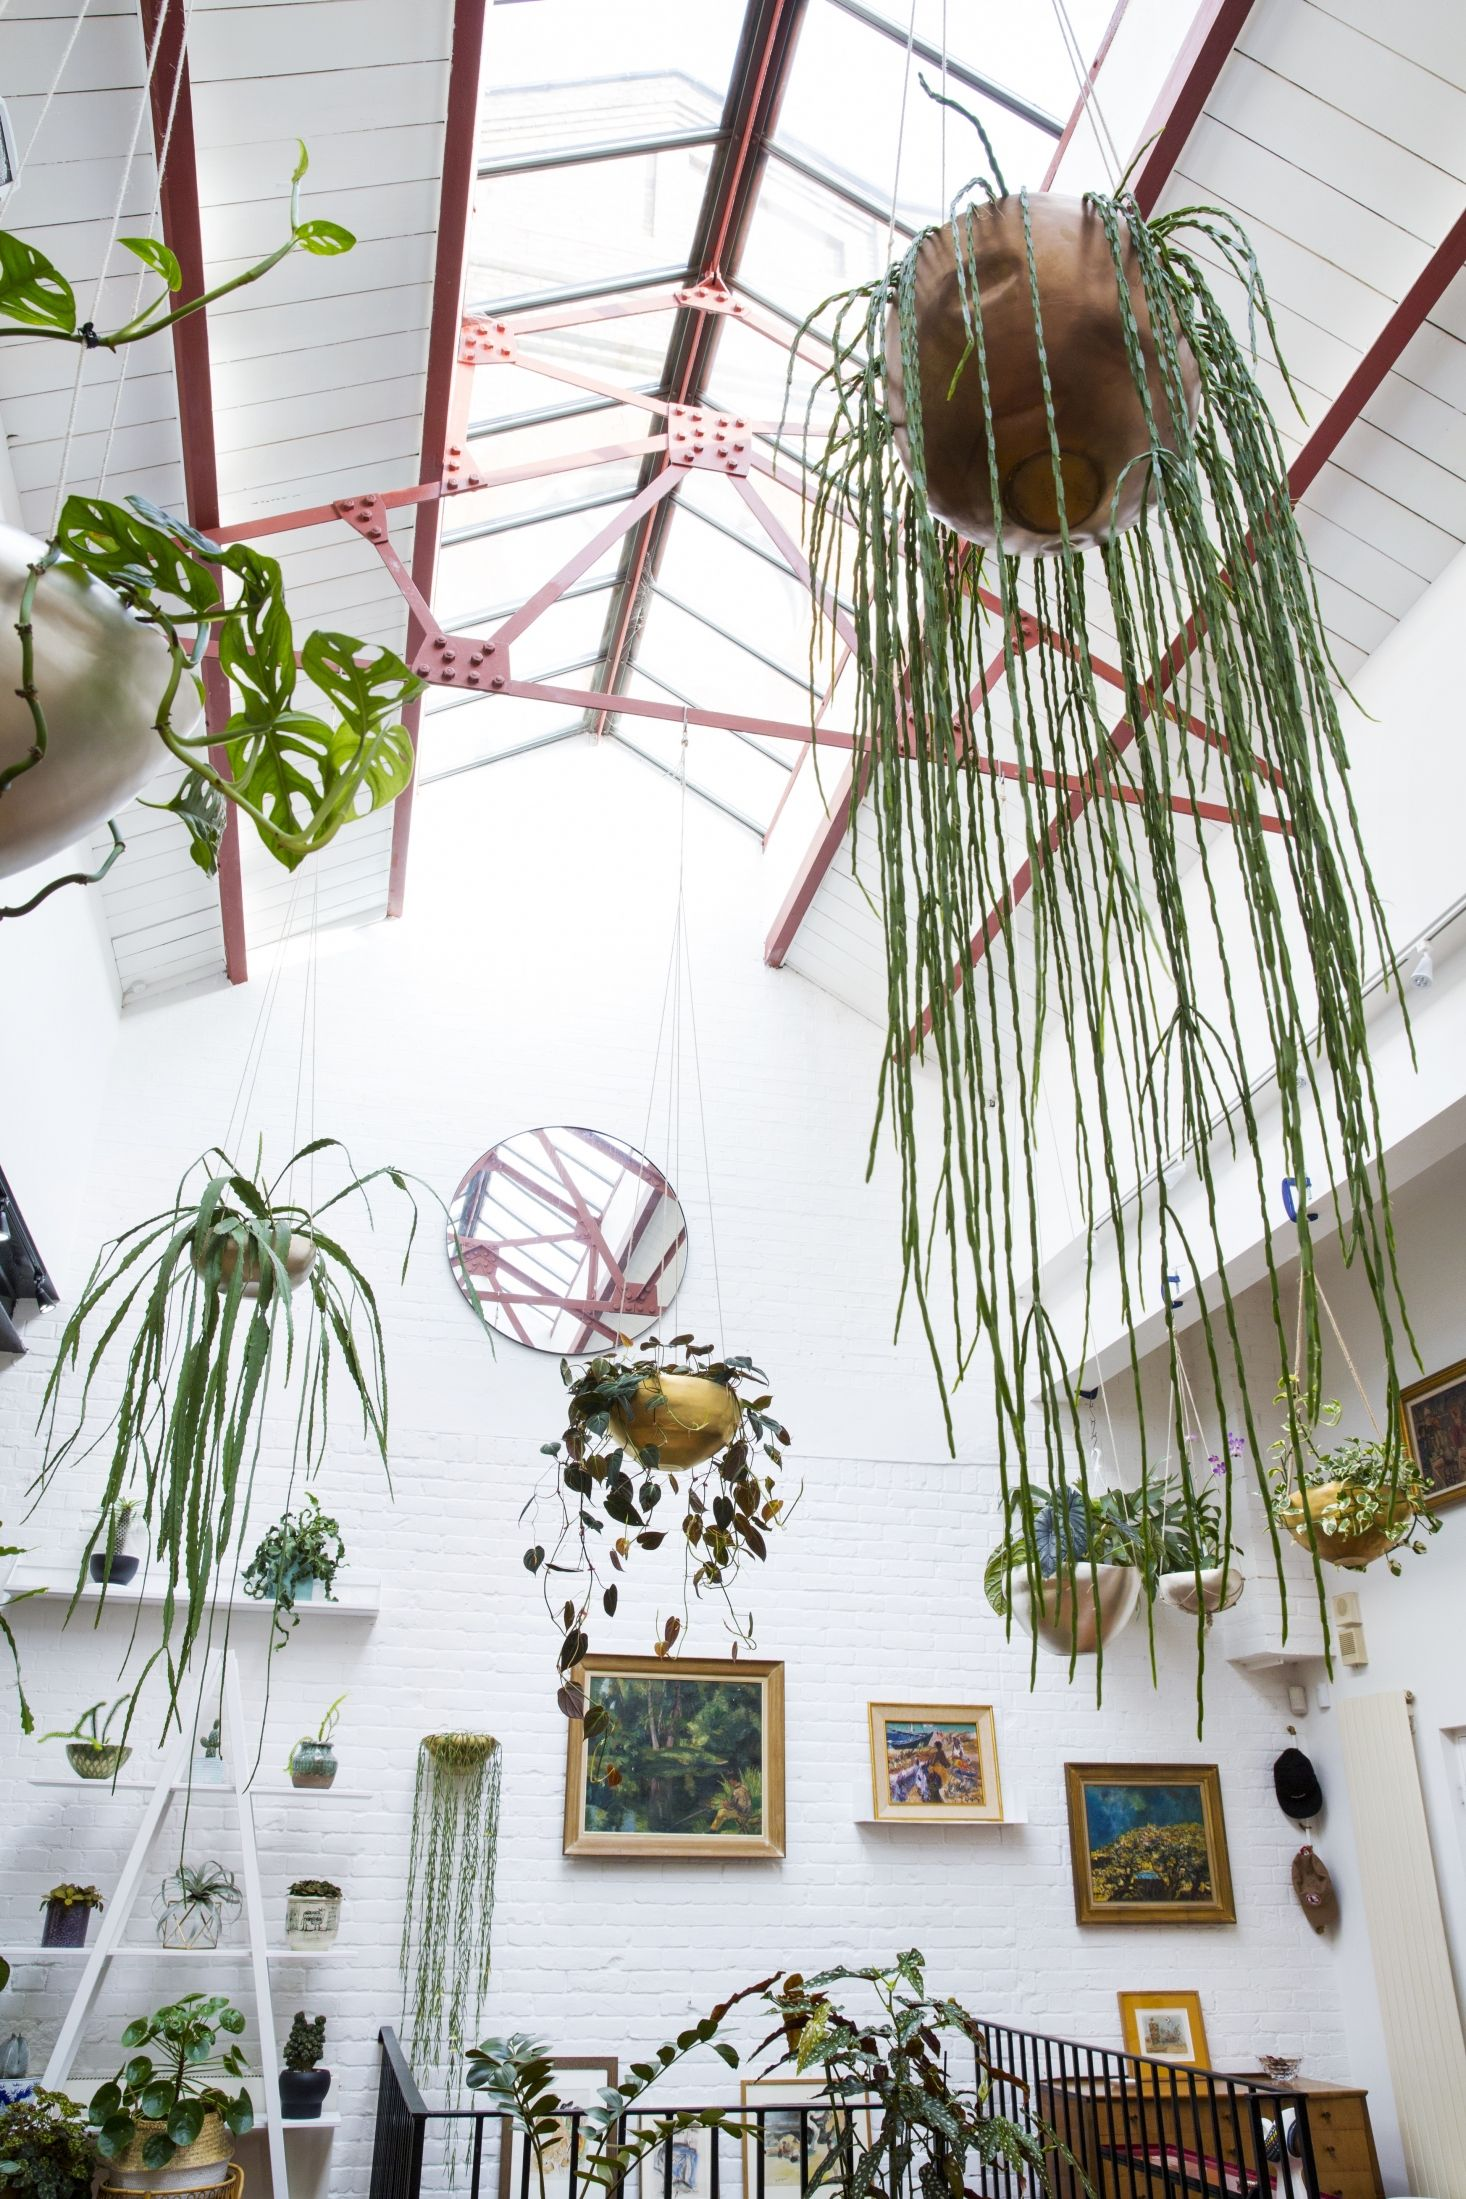 Jamie S Jungle At Home With Houseplants In London Gardenista Houseplants Hanging Plants Decor